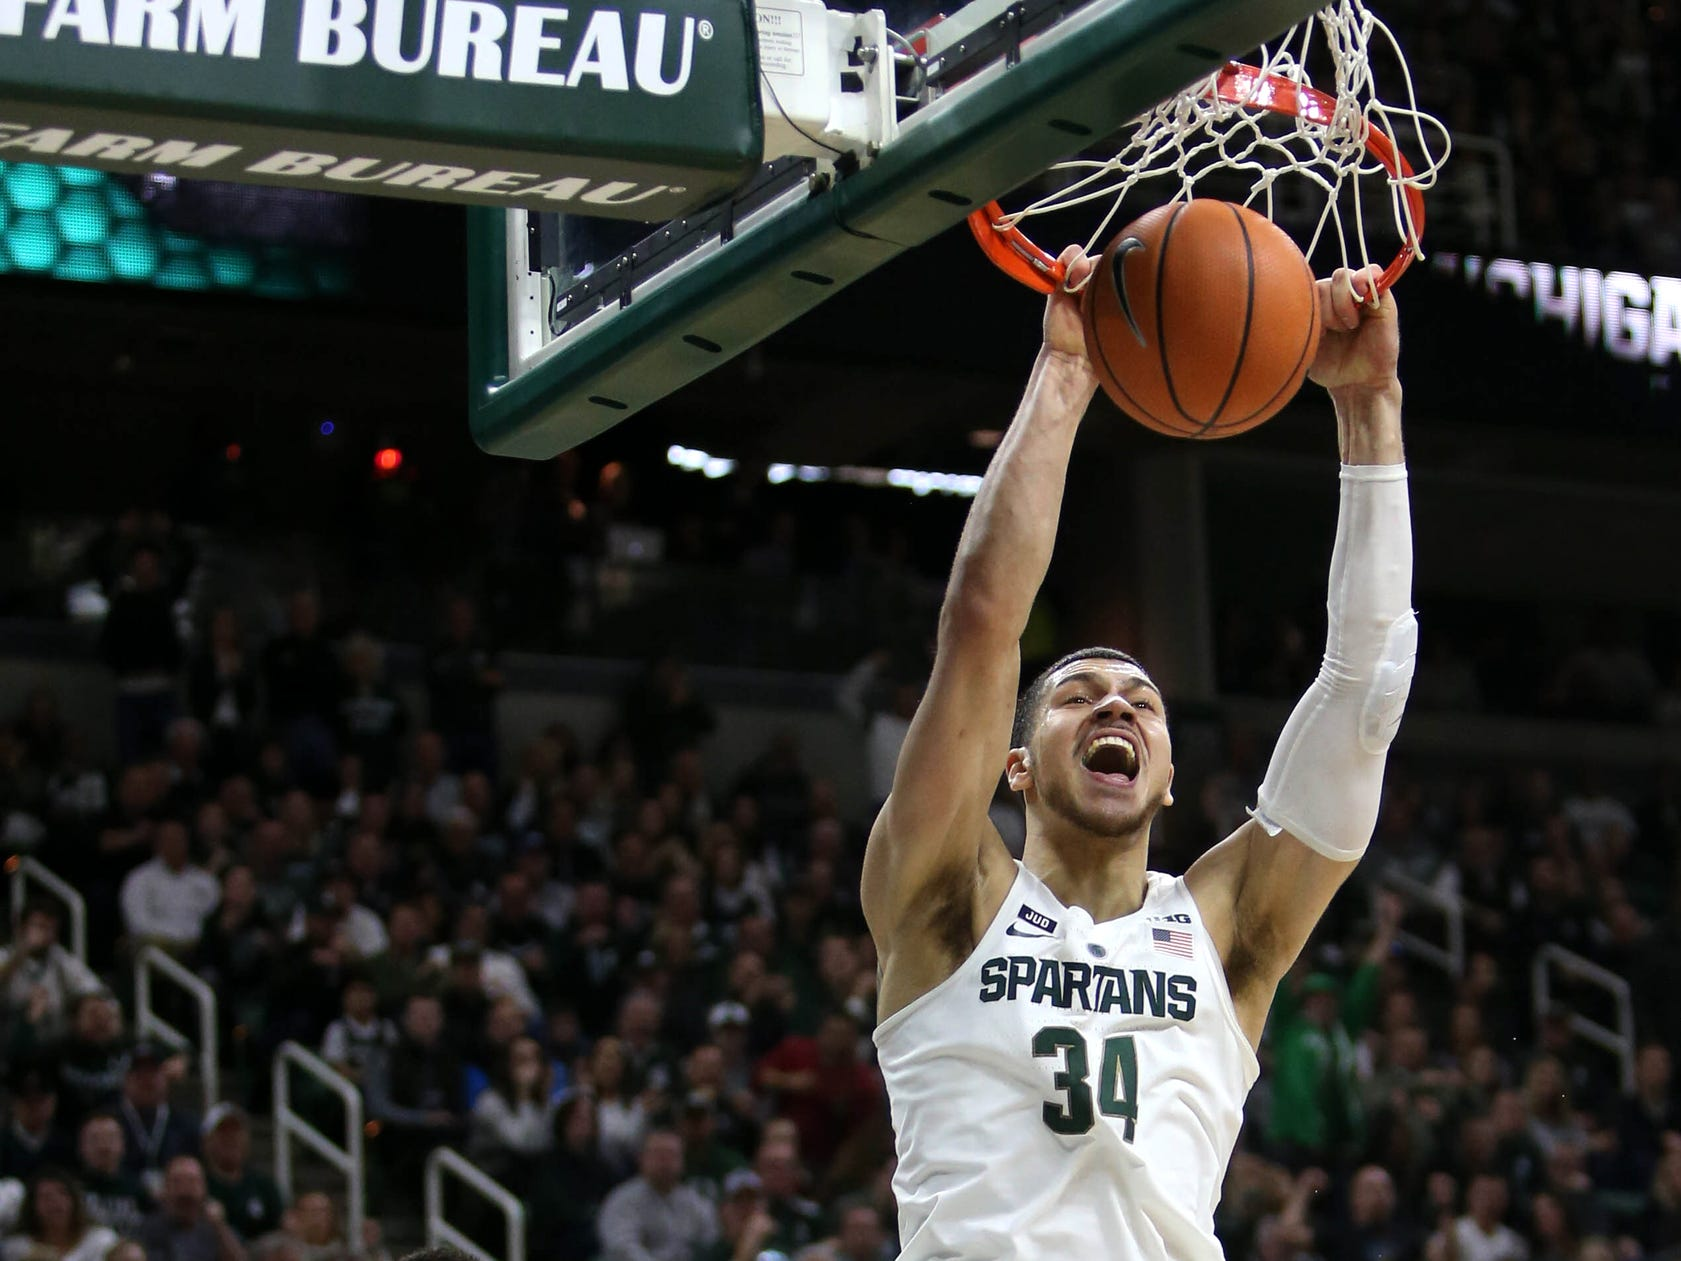 Michigan State forward Gavin Schilling scores against Purdue guard Dakota Mathias during first half action Saturday, February 10, 2018 at the Breslin Center in East Lansing, MI.